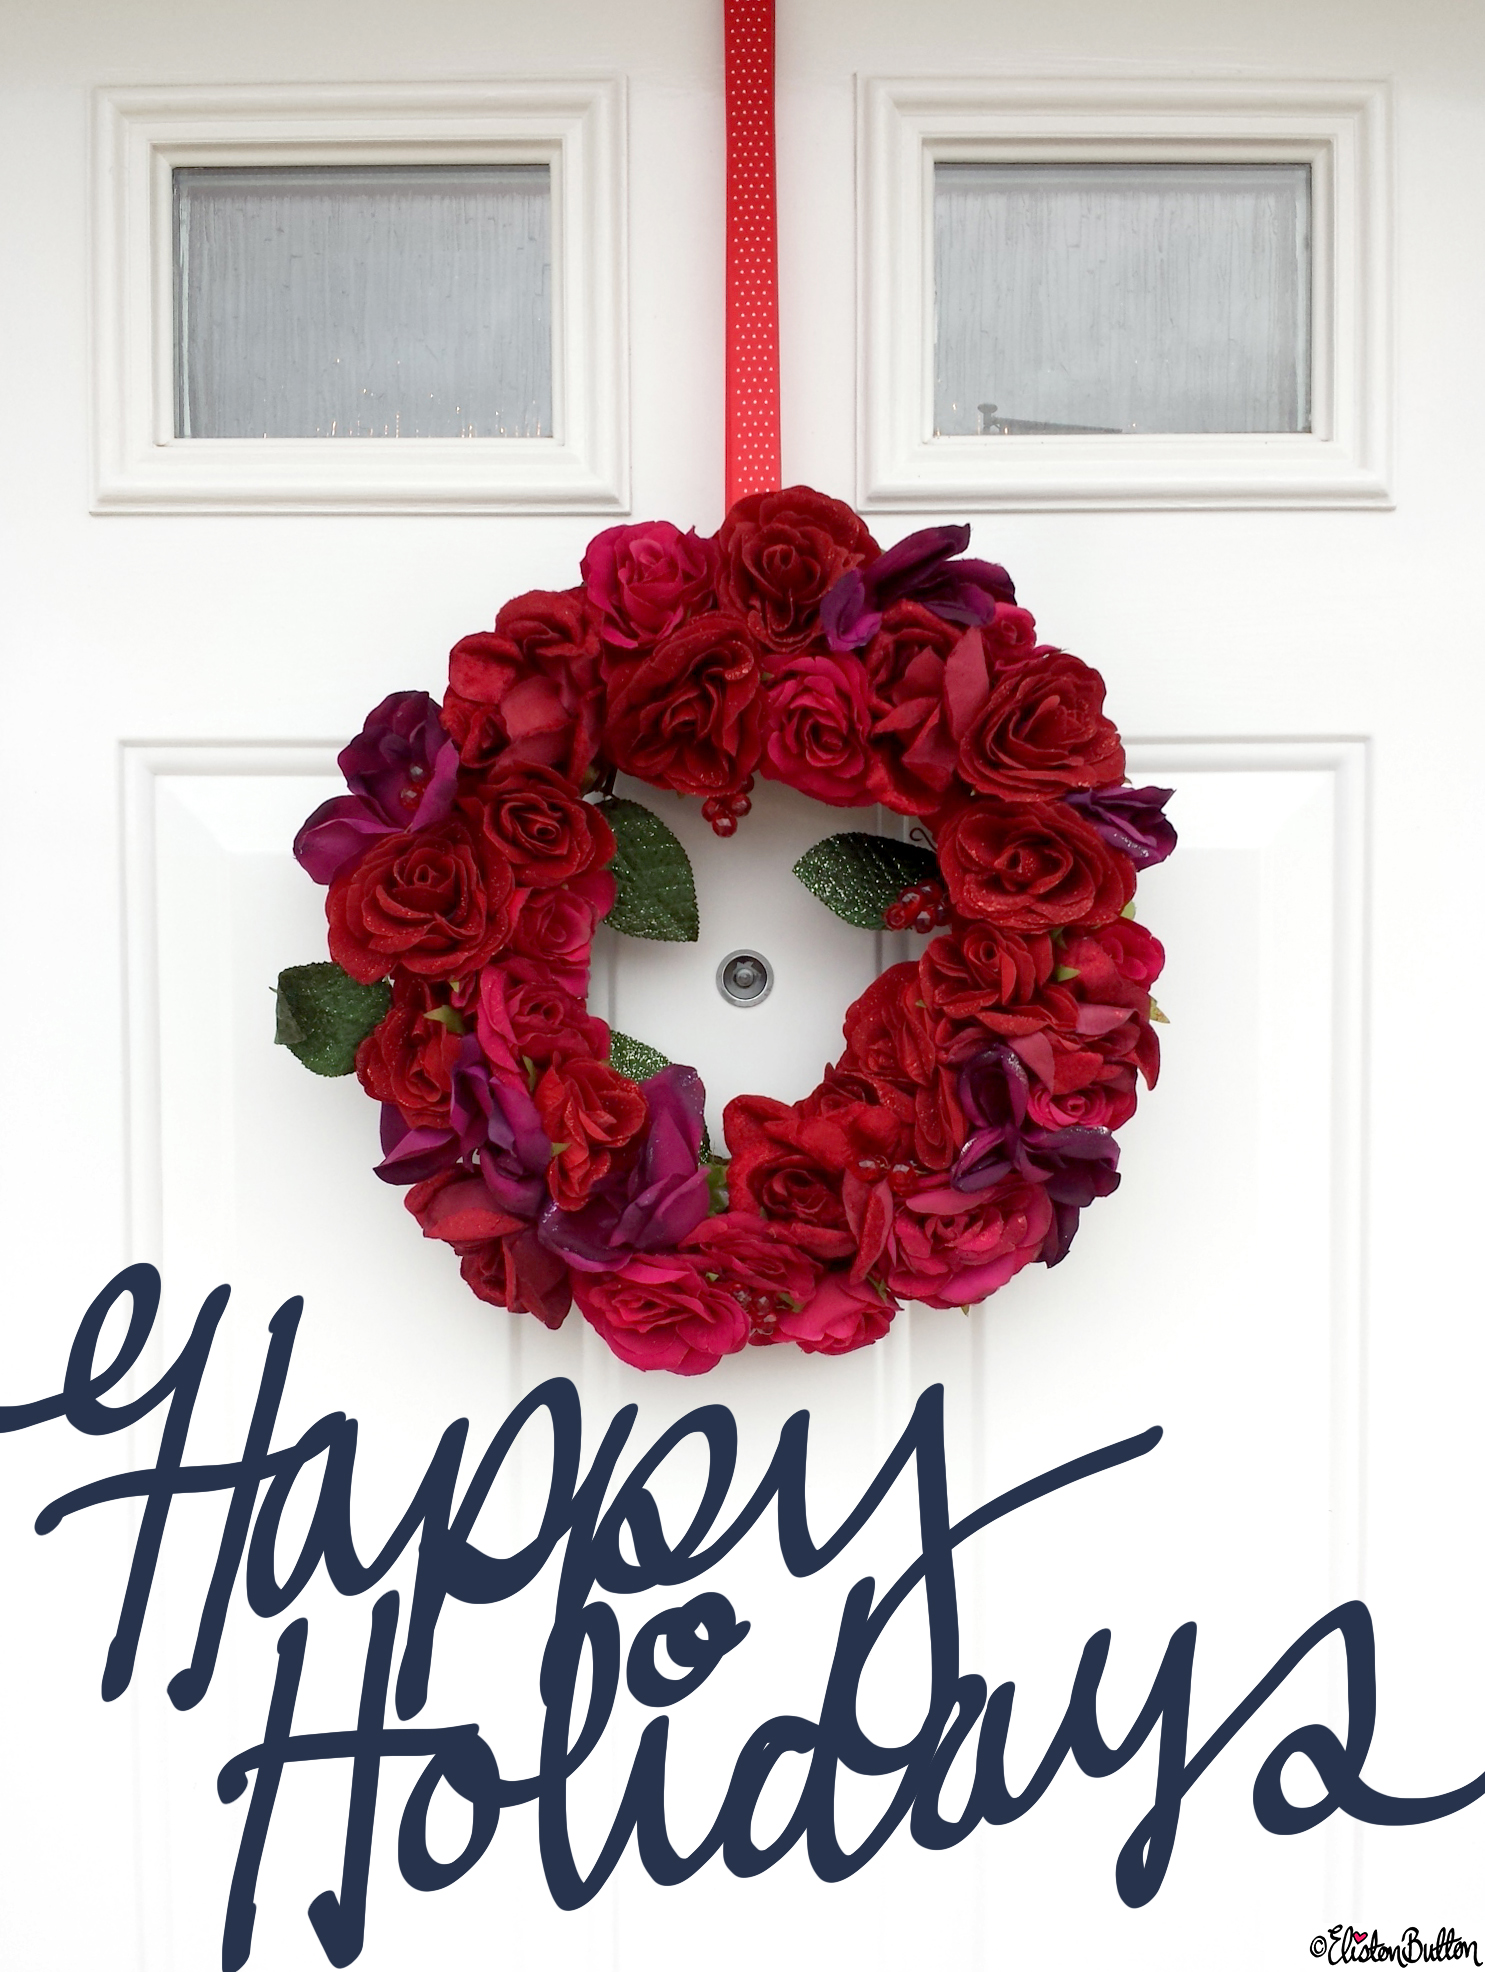 Happy Holidays Hand Lettering and Rose Floral Christmas Wreath - What a Year! (Merry Christmas & Happy Holidays!)